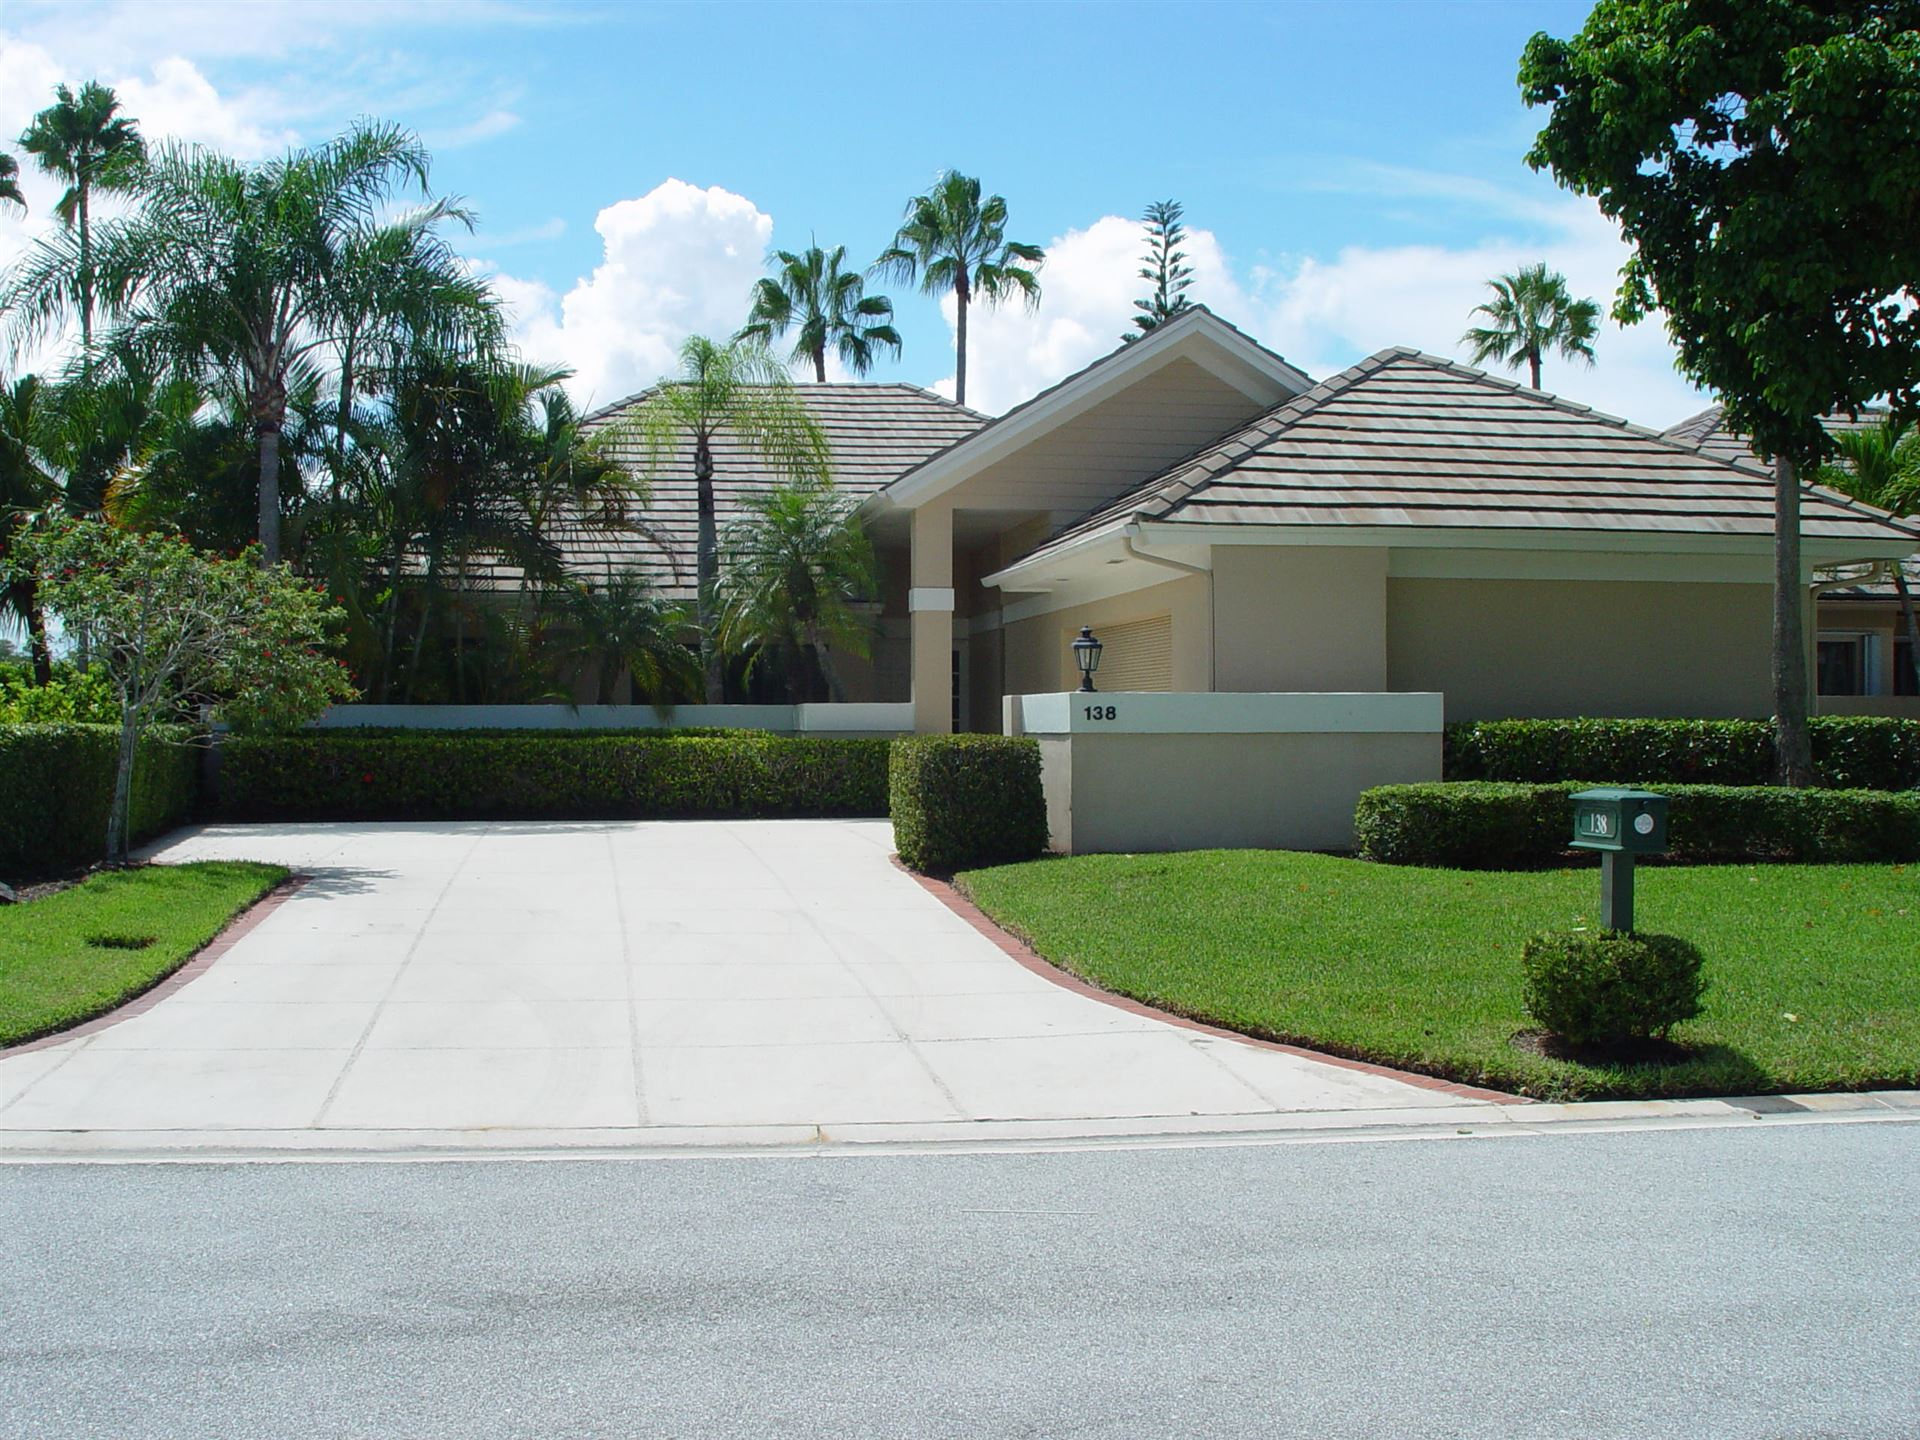 Photo of 138 Coventry Place, Palm Beach Gardens, FL 33418 (MLS # RX-10556365)